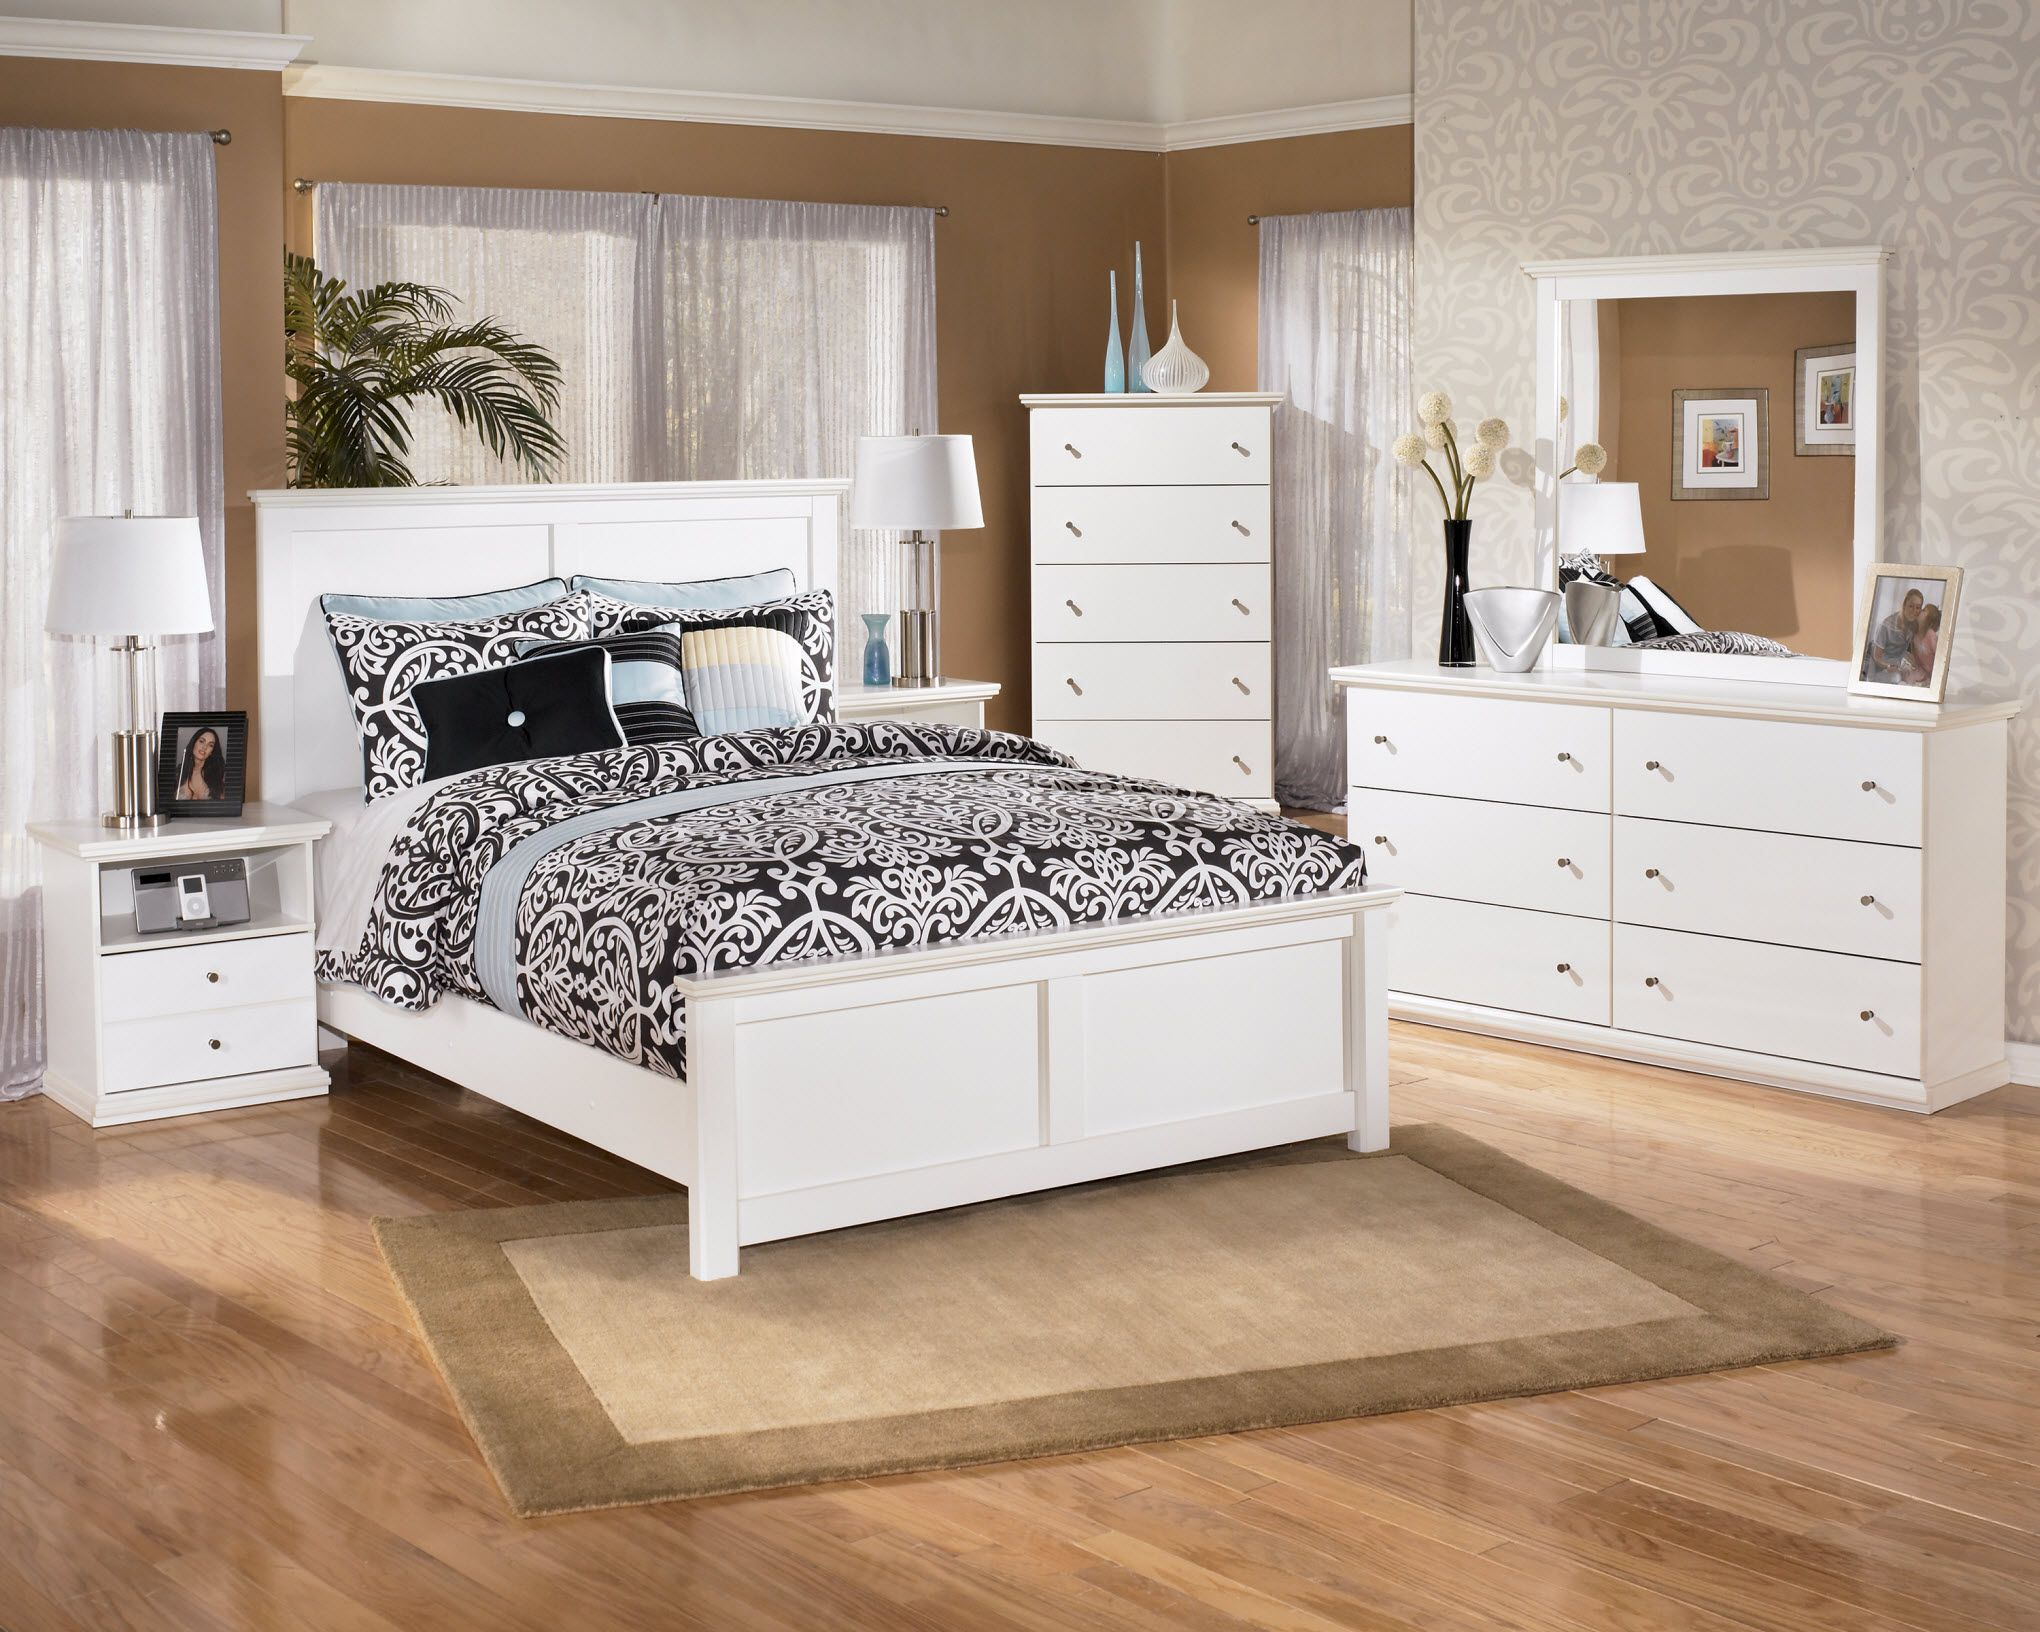 Get your Bostwick Shoals 5 Pc  Bedroom   Dresser  Mirror   Queen Panel Bed  at Furniture Warehouse  Holland MI furniture store. Bostwick Shoals Solid White Cottage Style Bedroom Set   Wholesale